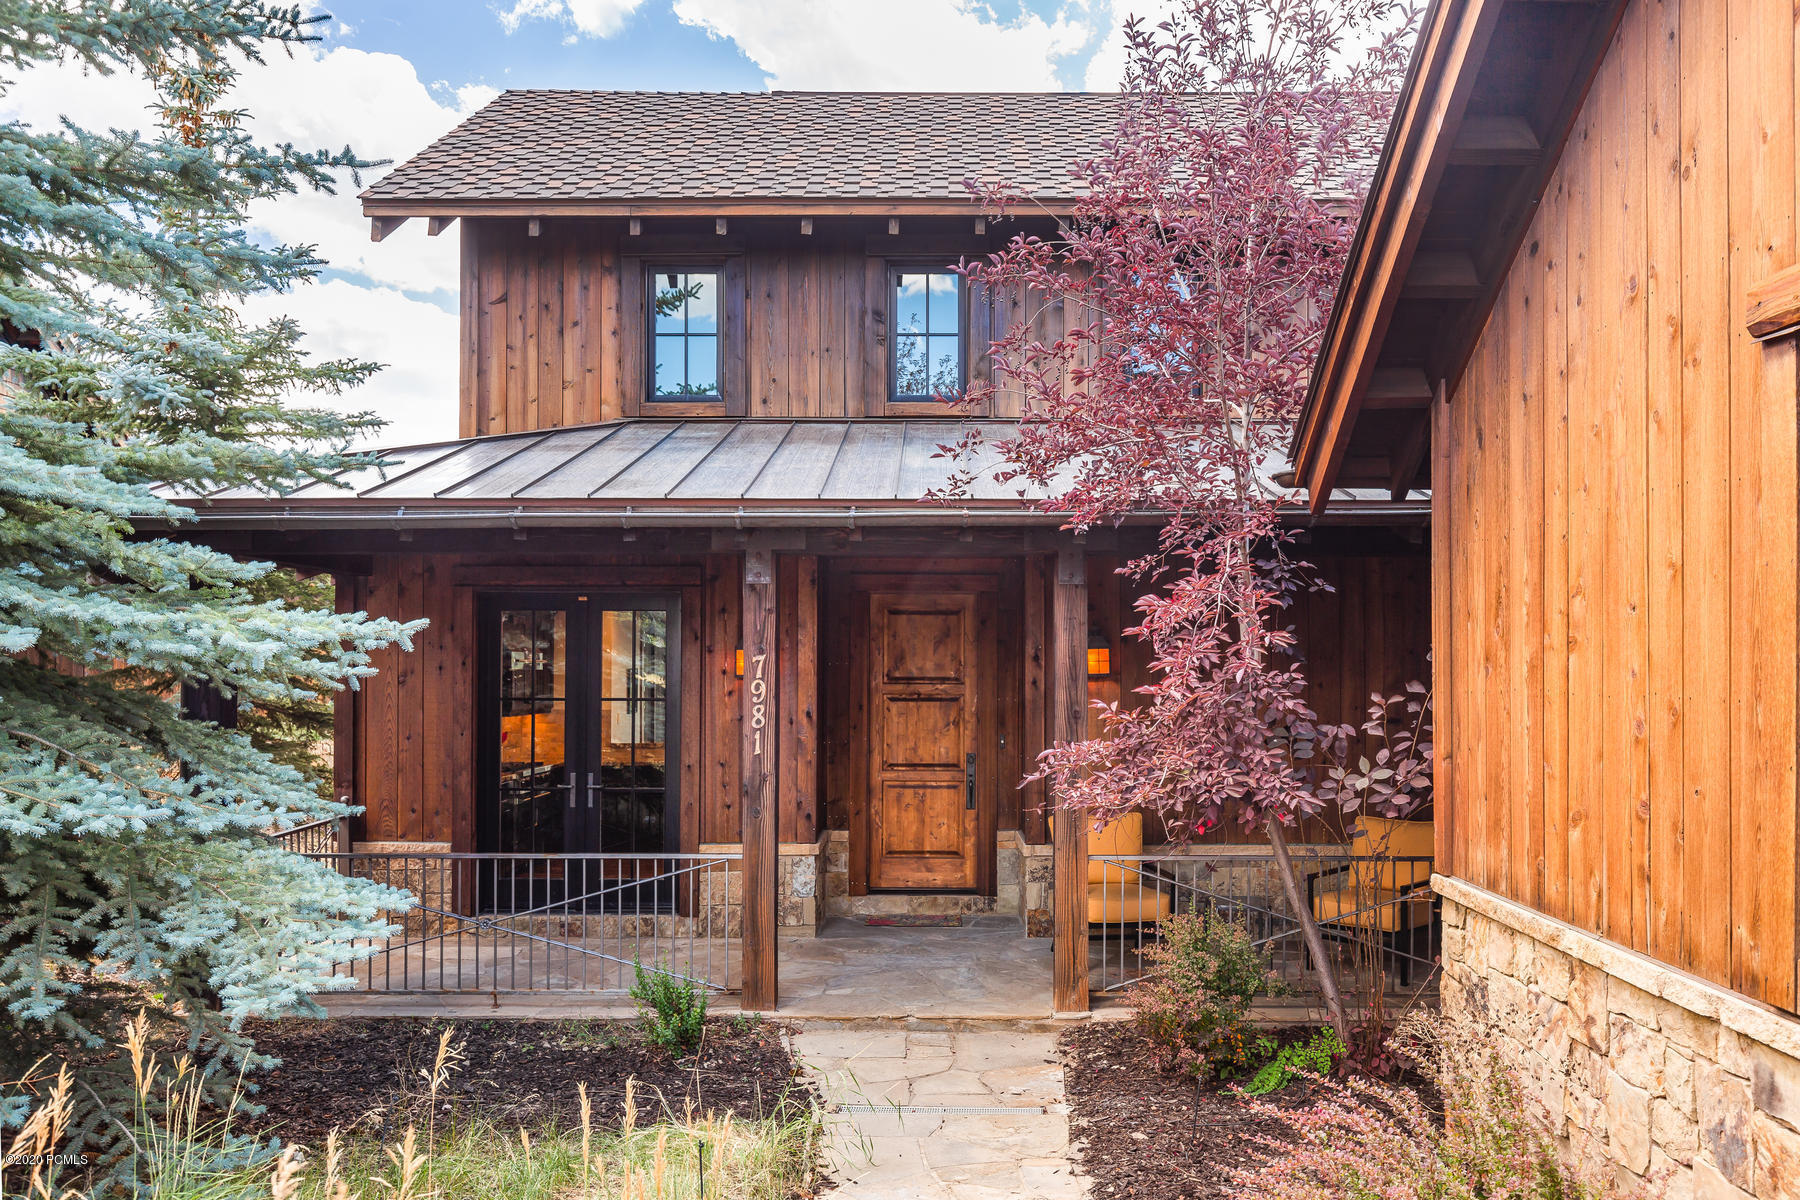 7981 Western Sky, Park City, Utah 84098, 3 Bedrooms Bedrooms, ,3 BathroomsBathrooms,Single Family,For Sale,Western Sky,12003063